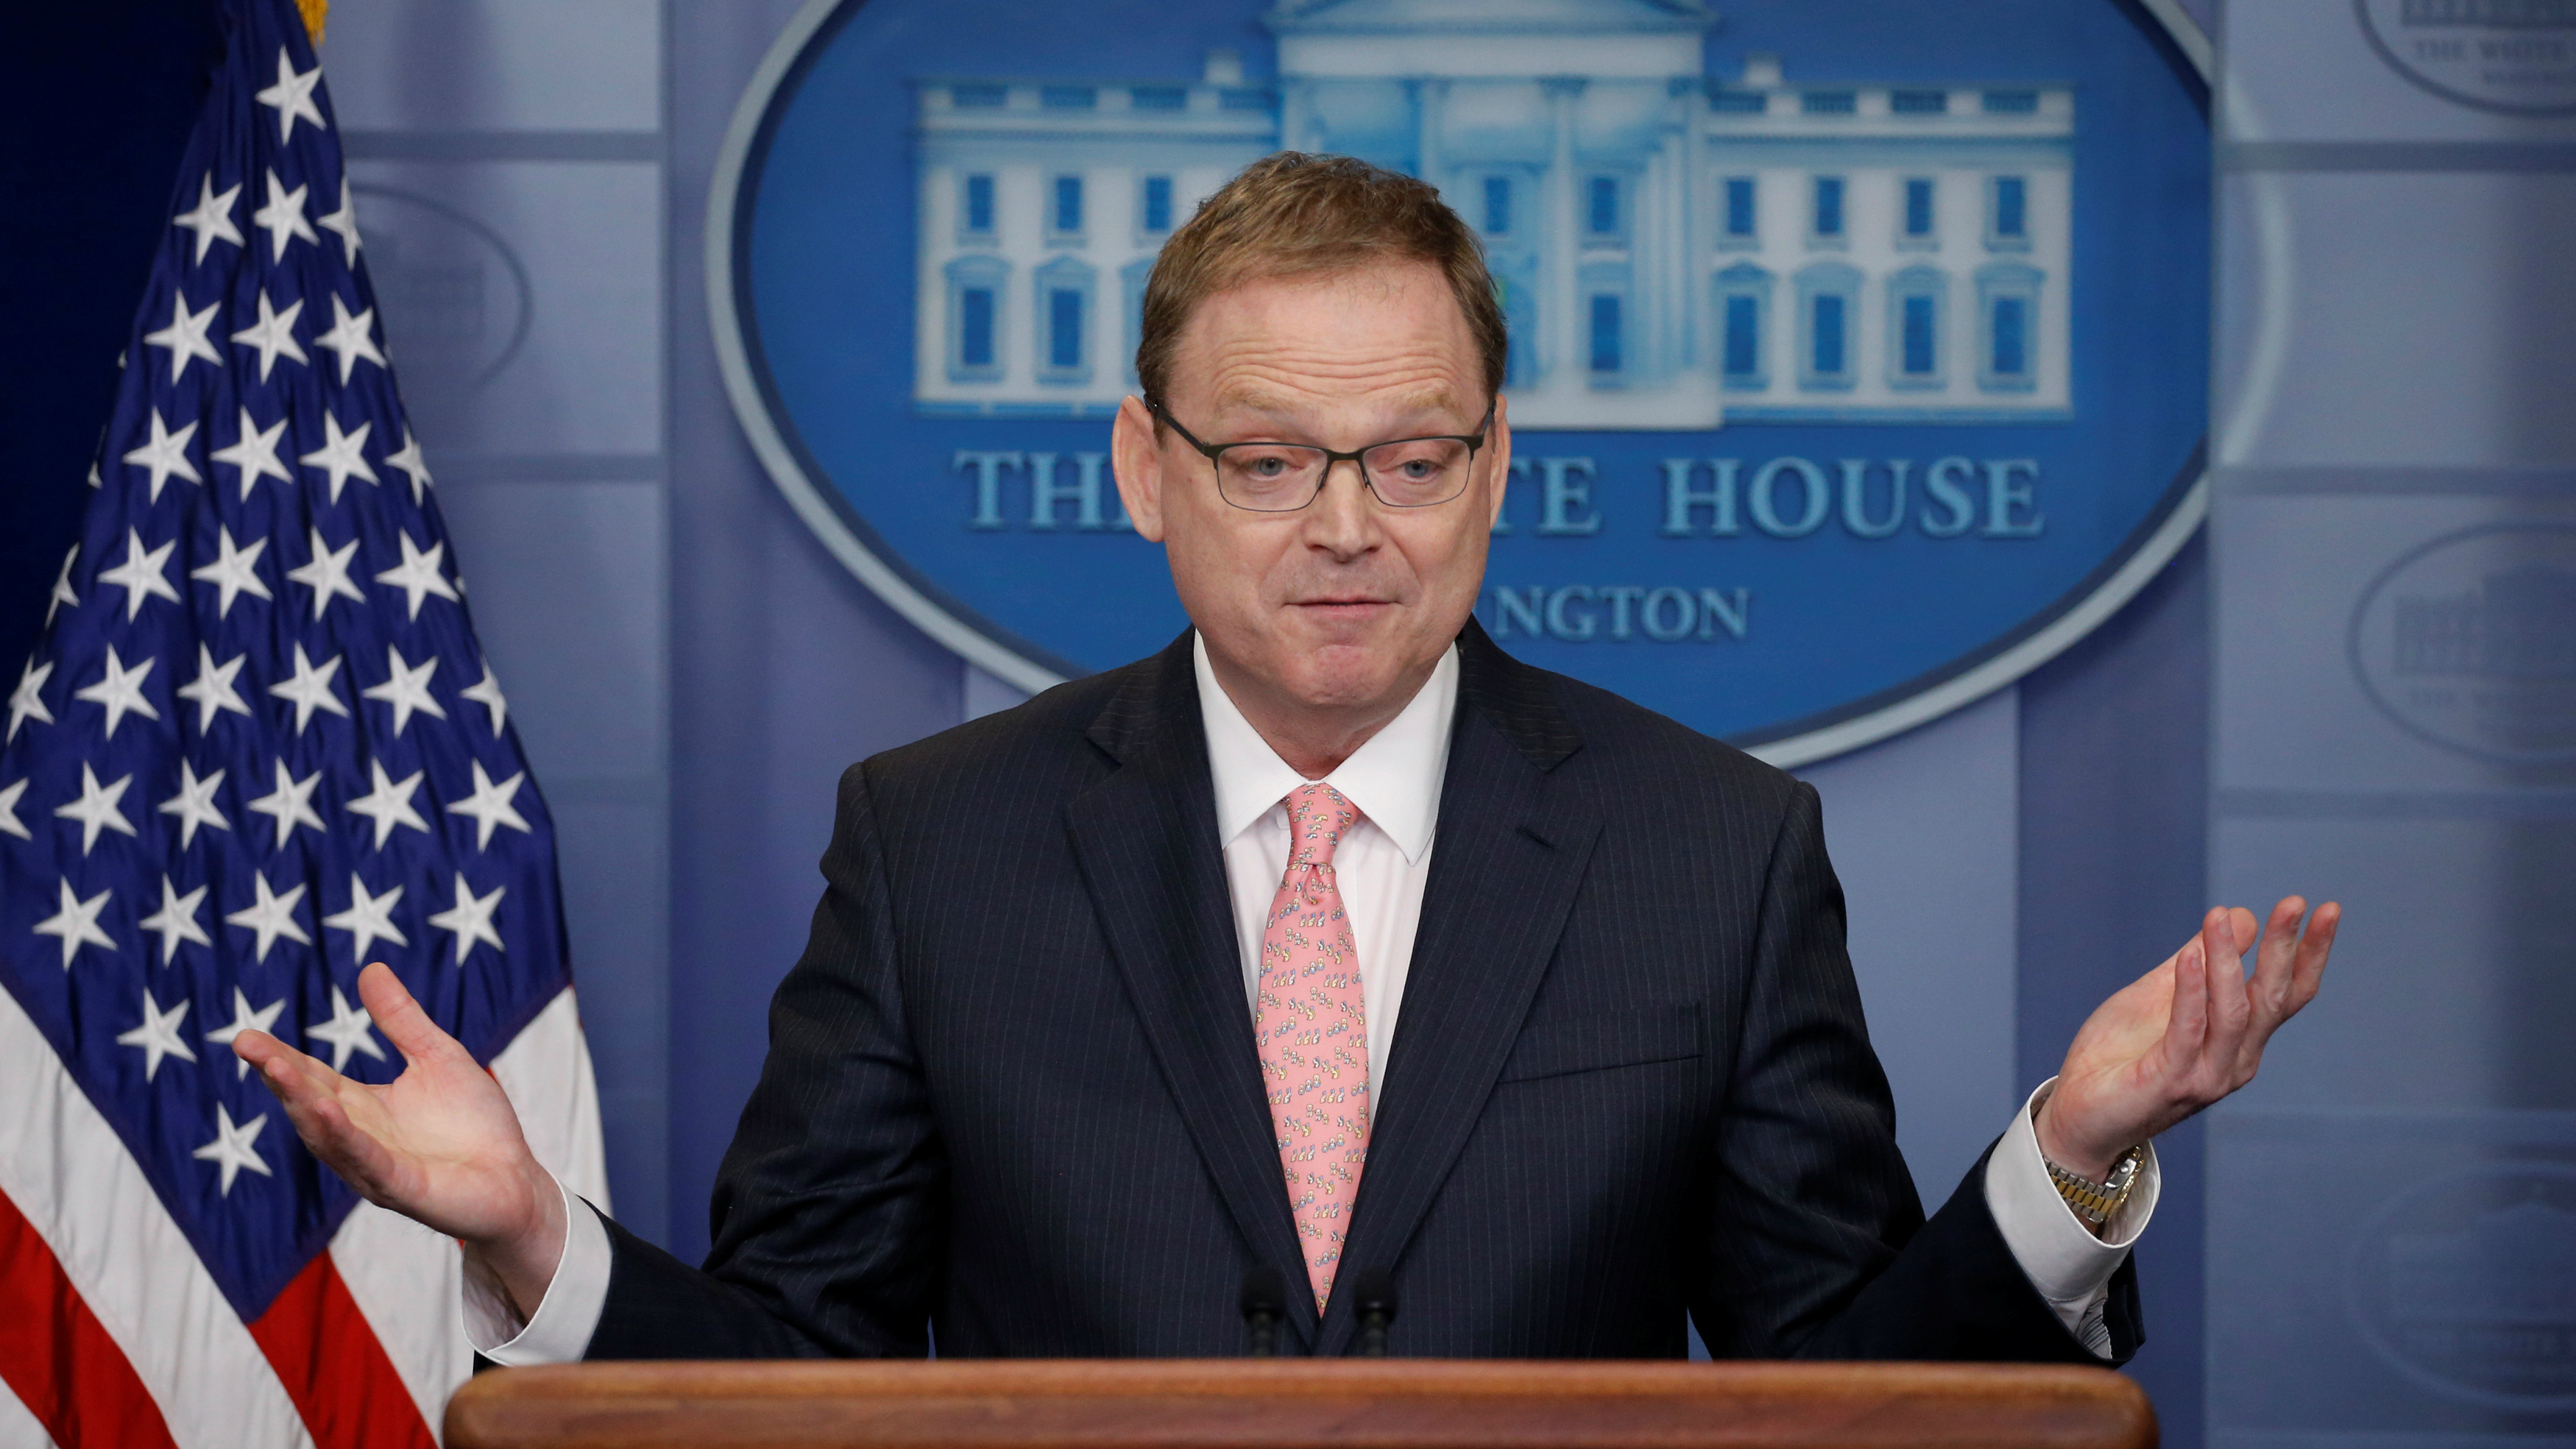 Chair of the Council of Economic Advisers Kevin Hassett at a lectern.